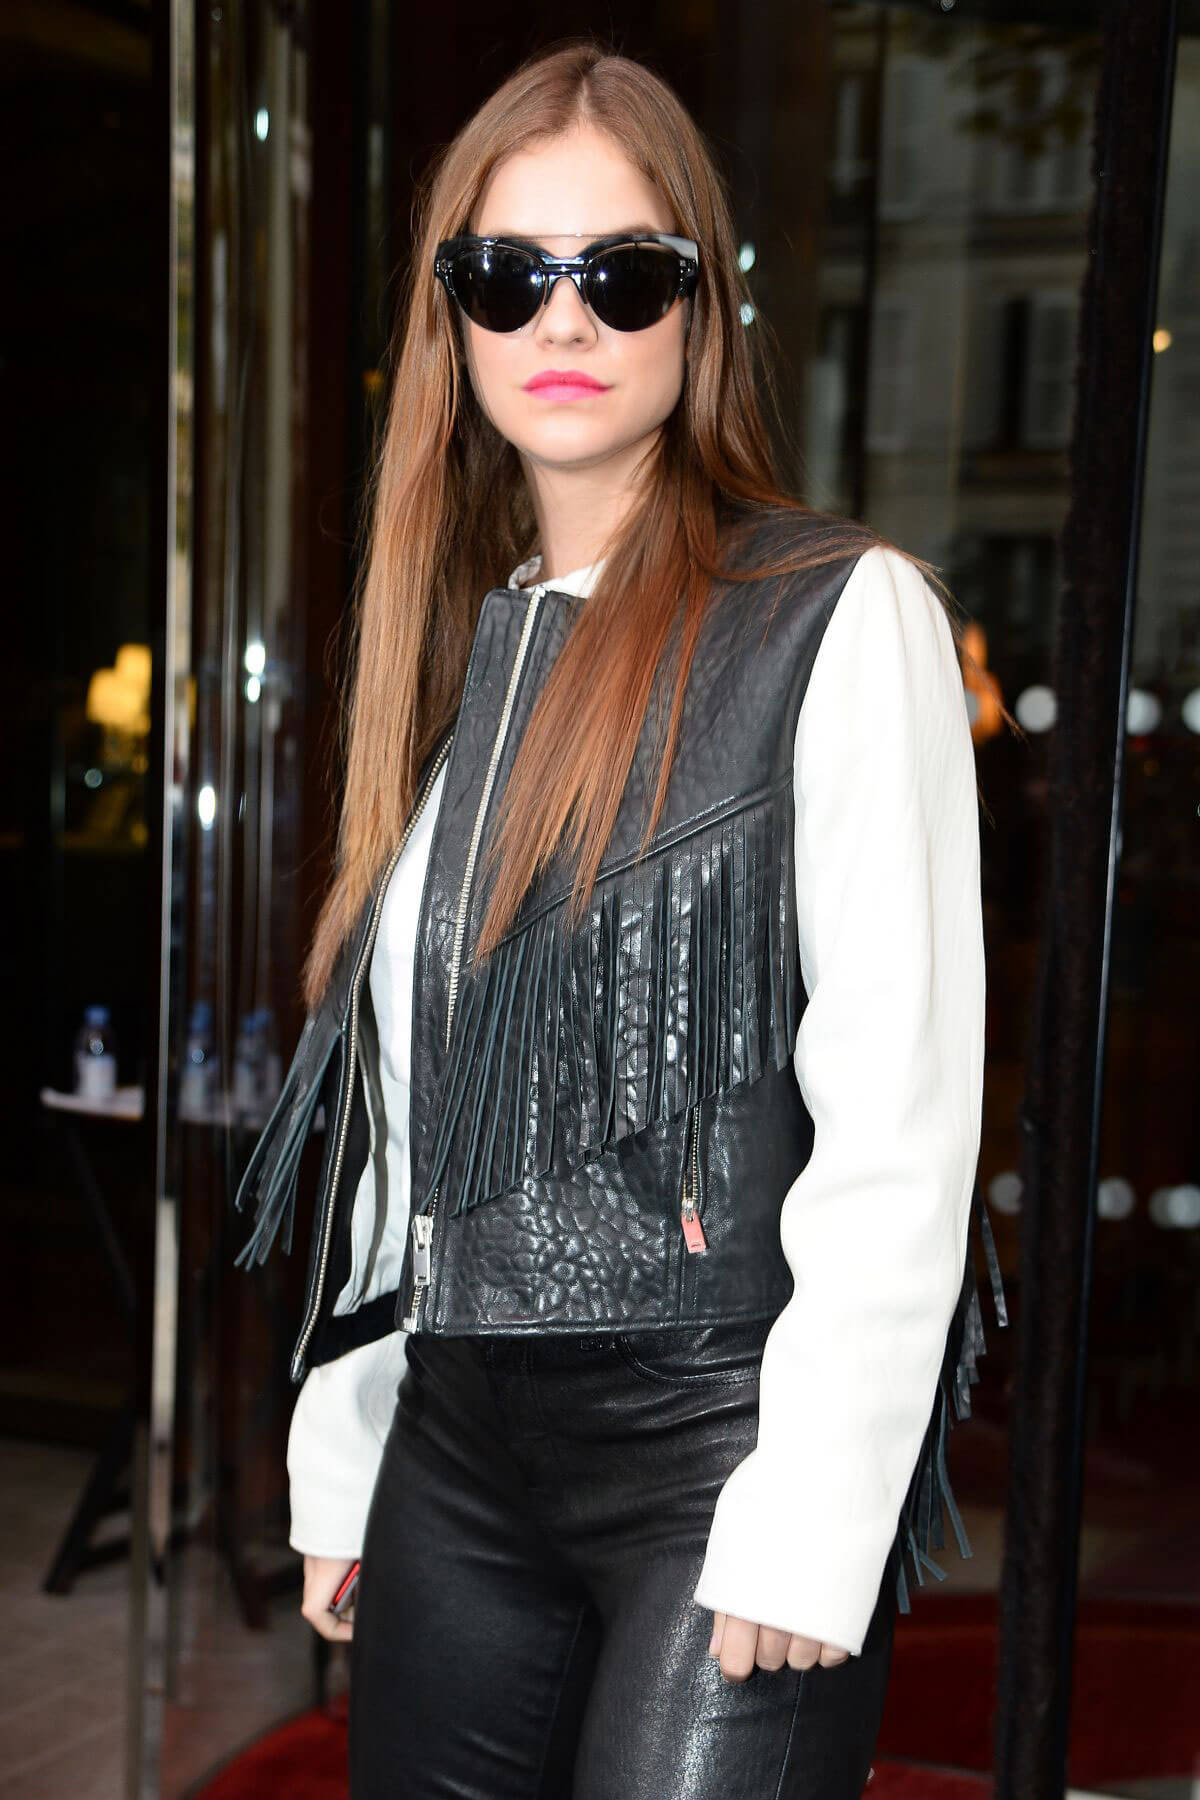 Barbara Palvin wears Leather Pants Out and About in Paris